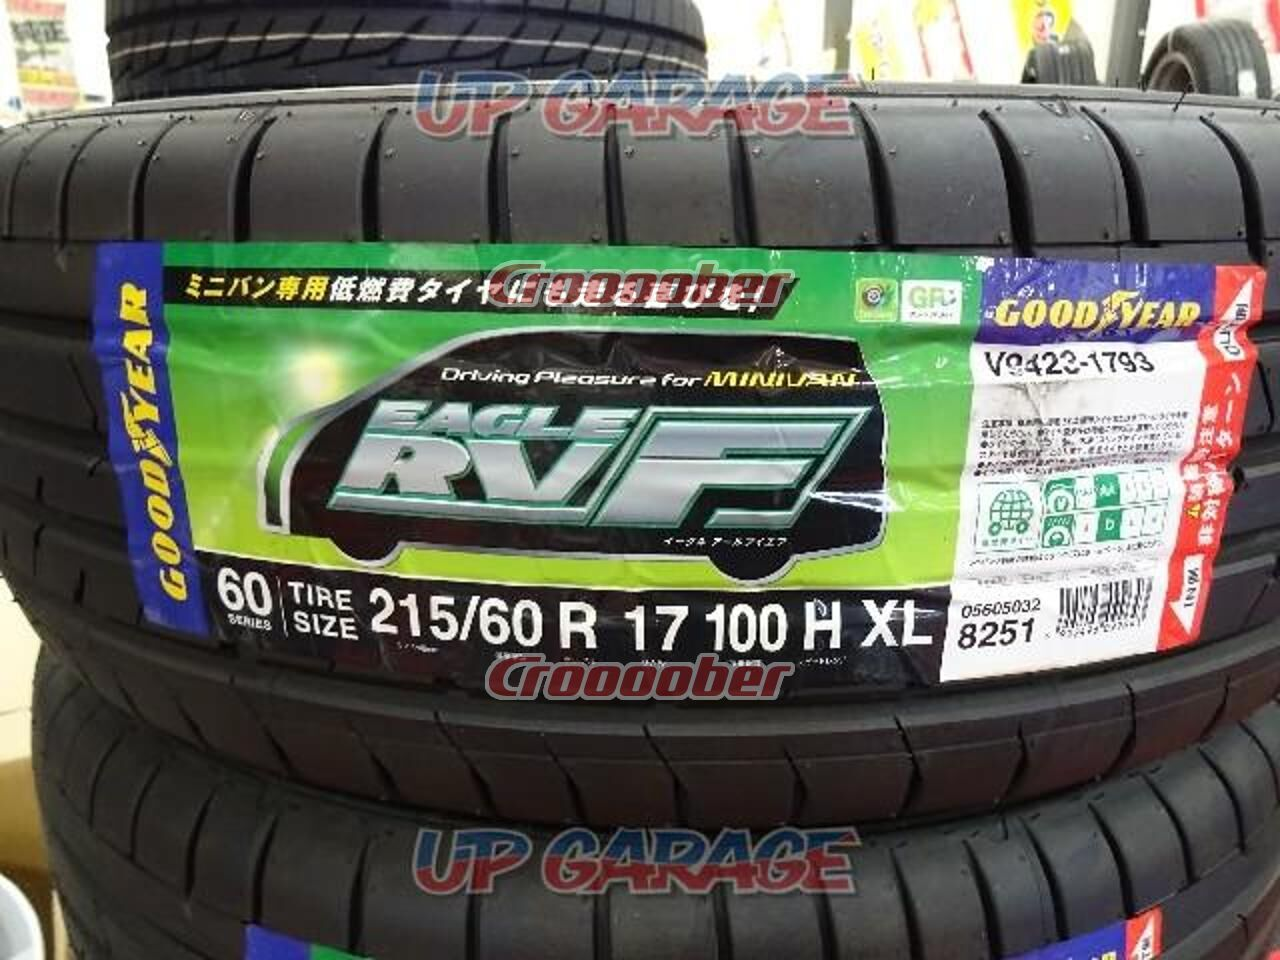 New Tires Four Limited Price Goodyear Rv F 17 Tire Croooober